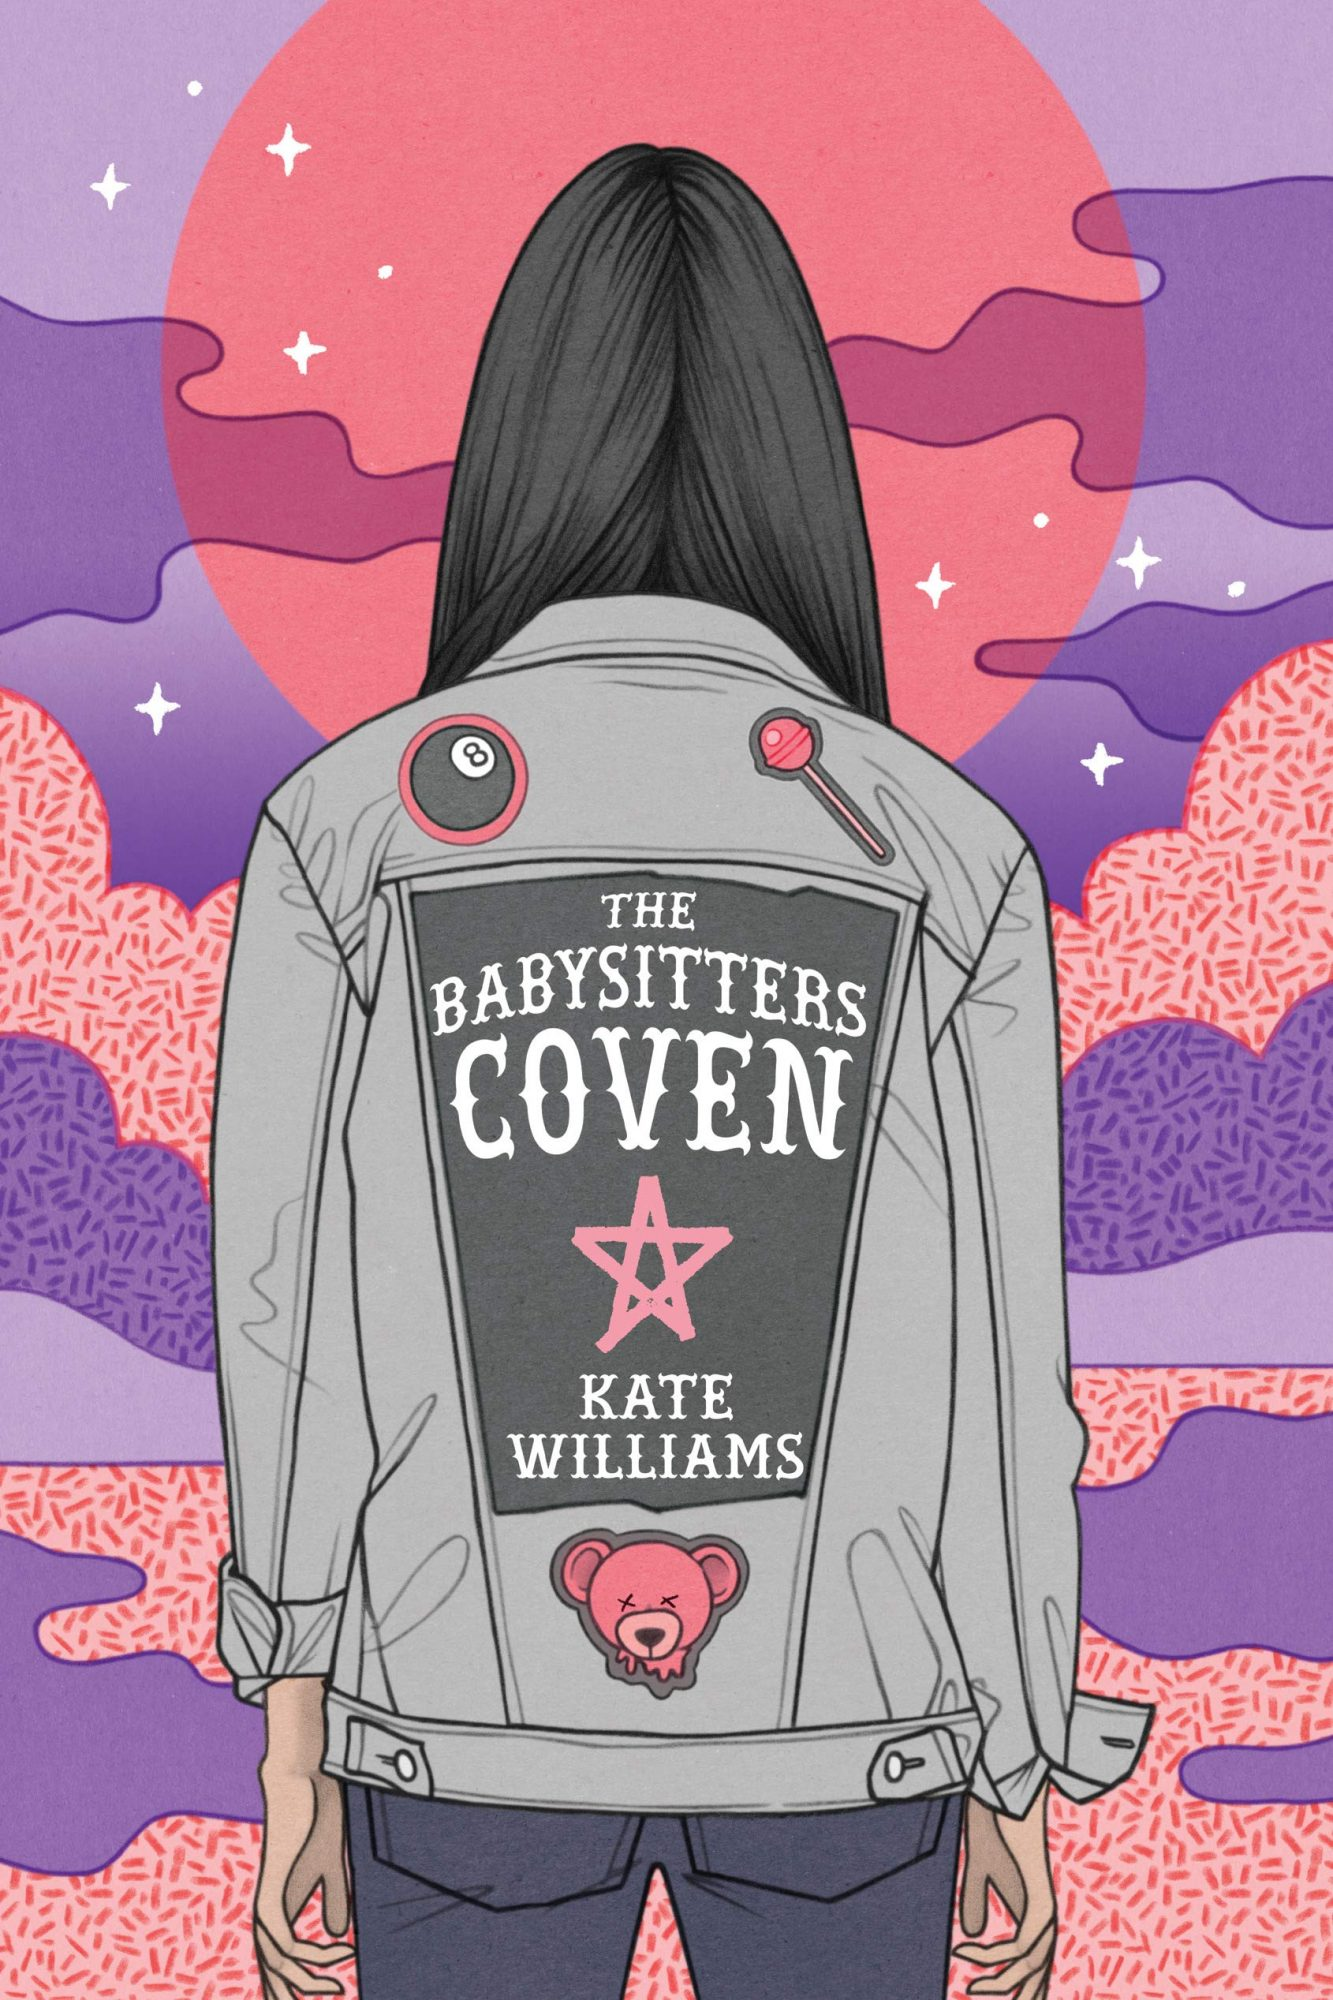 The Babysitters Coven book cover